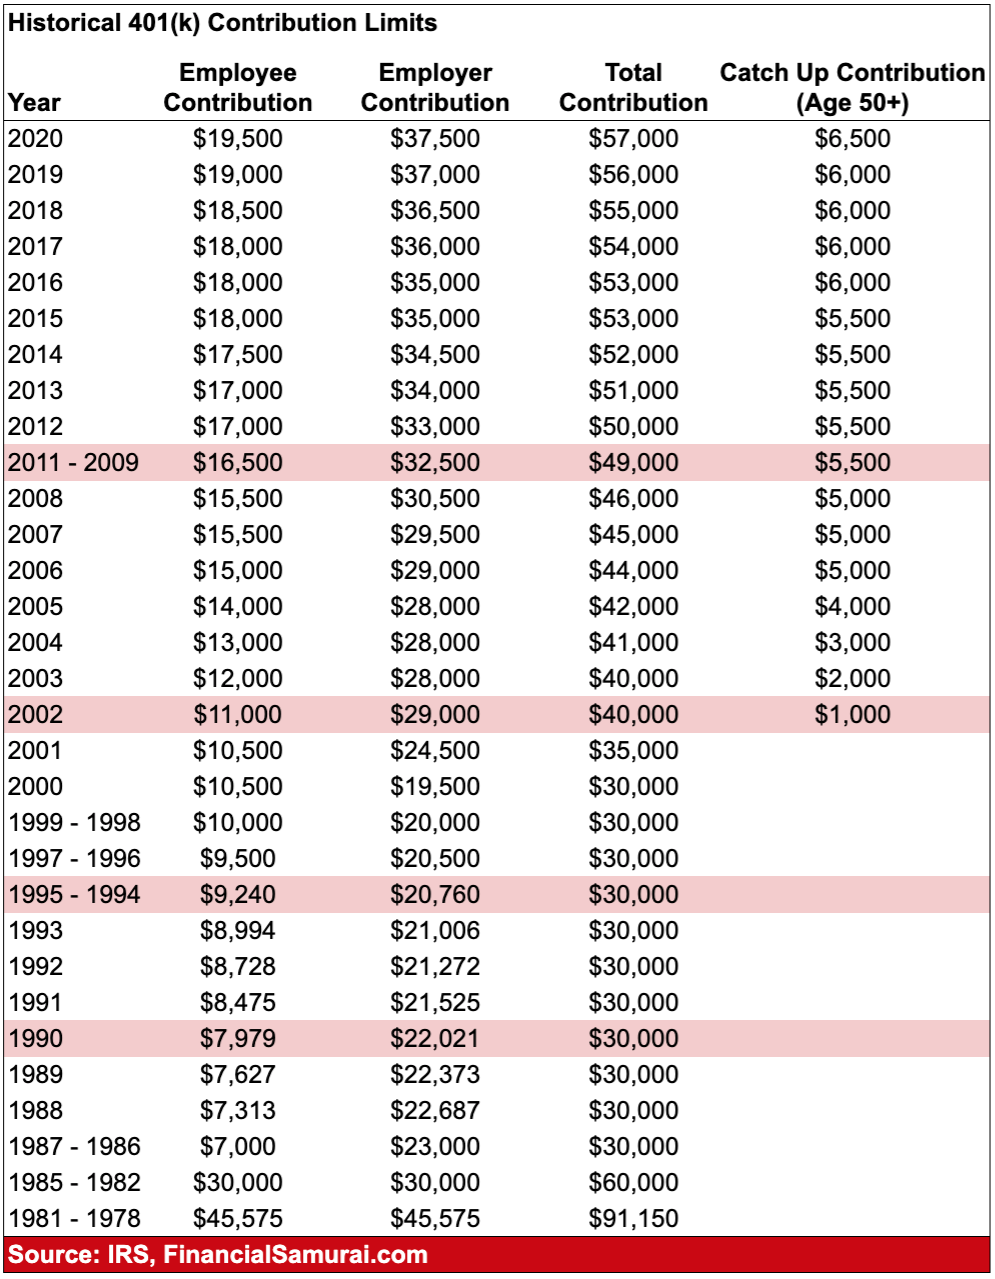 Historical 401(k) contribution limits and employer contribution limits